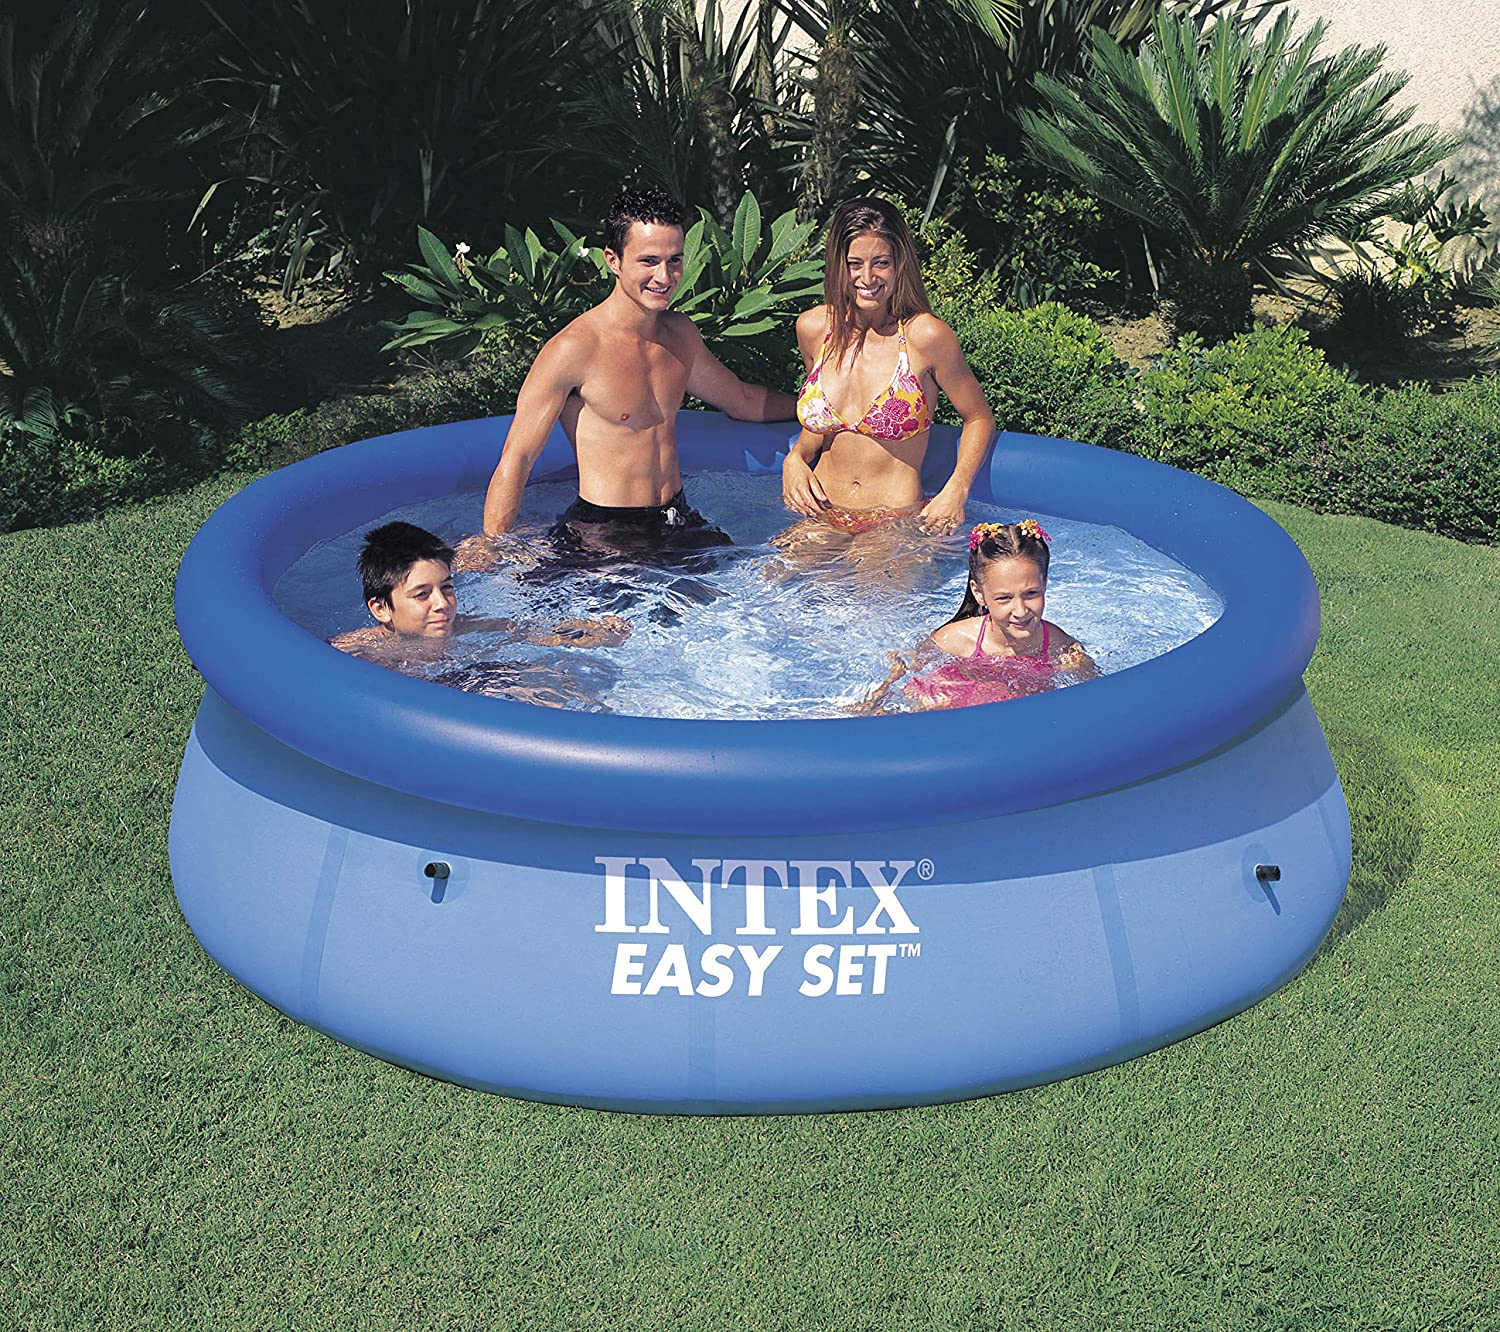 piscina intex per estate 28110 a soli 24.90€ - gioco estivo easy 2419 litri, 244 x 76 cm